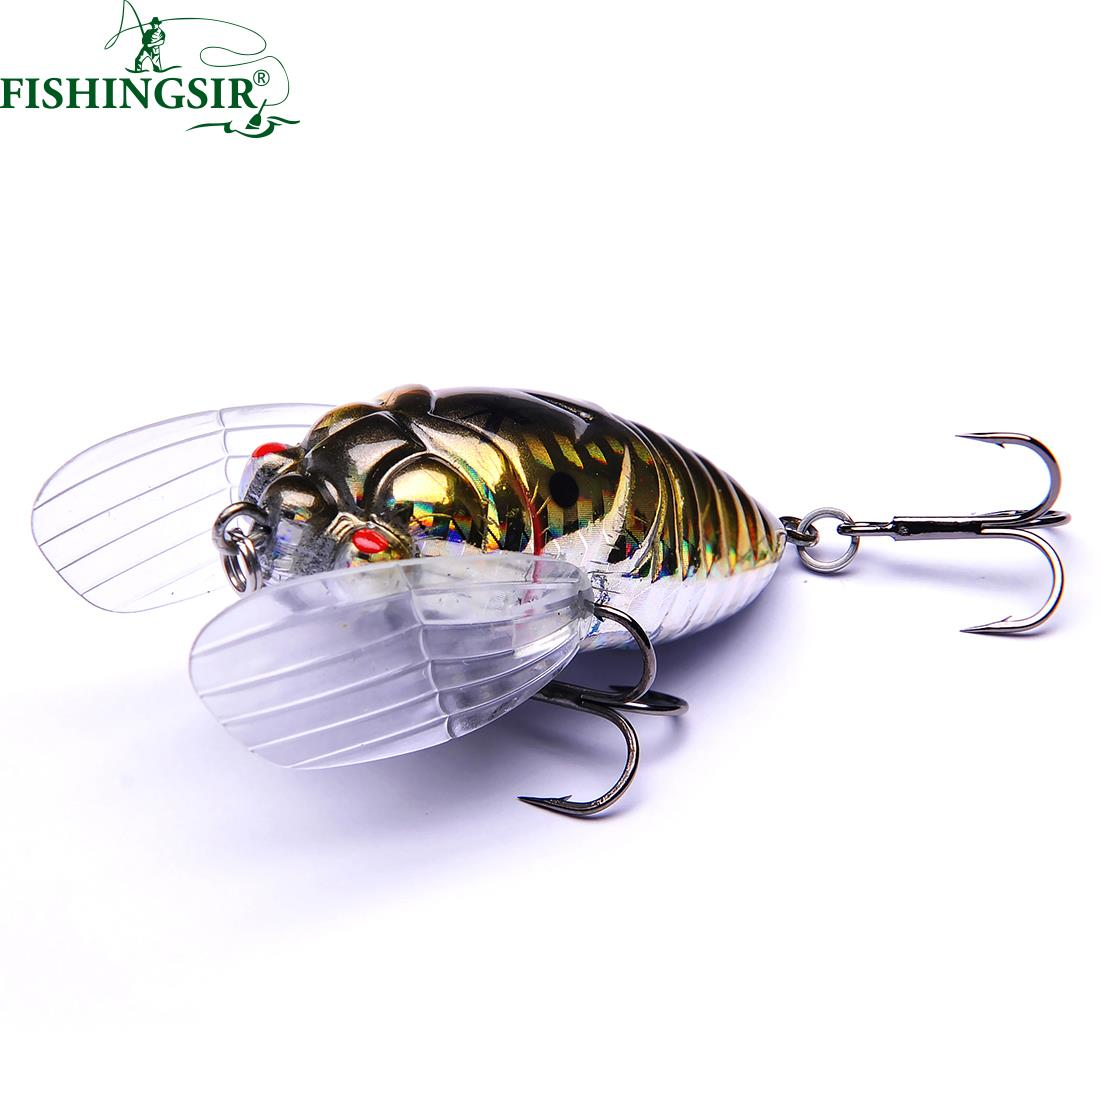 Winter Ice Fishing Lures Floating Insect Fly Tying Fishing Lure Cicada Baits 40mm 55mm Artificial Hard Bait Pesca Tackle Hooks 5sheets pack 10cm x 5cm holographic adhesive film fly tying laser rainbow materials sticker film flash tape for fly lure fishing